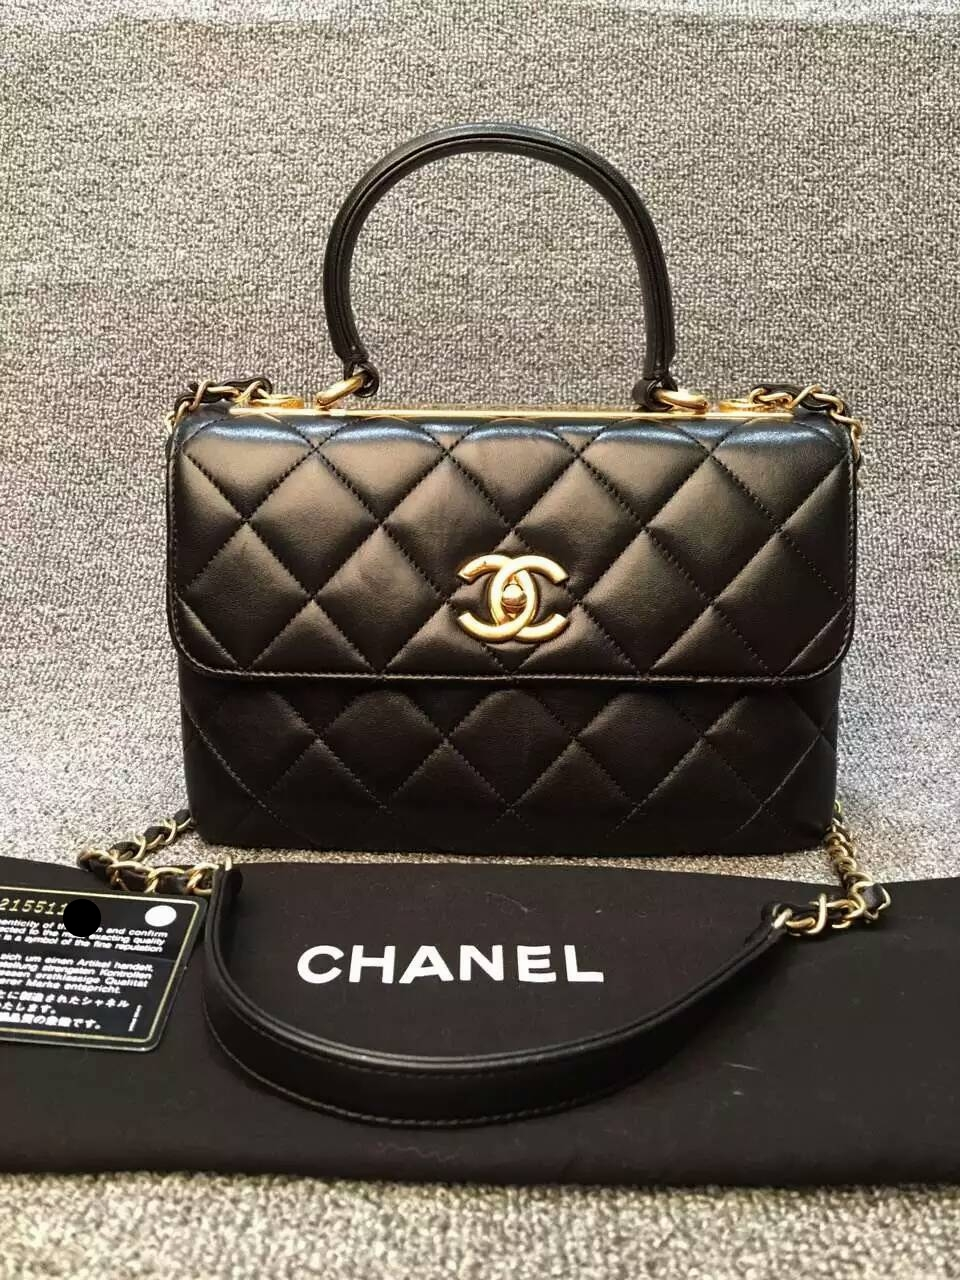 a3f7cfc89031 Chanel Trendy CC Small Dual Handle Flap Bag — CONSIGNMENT BOULEVARD